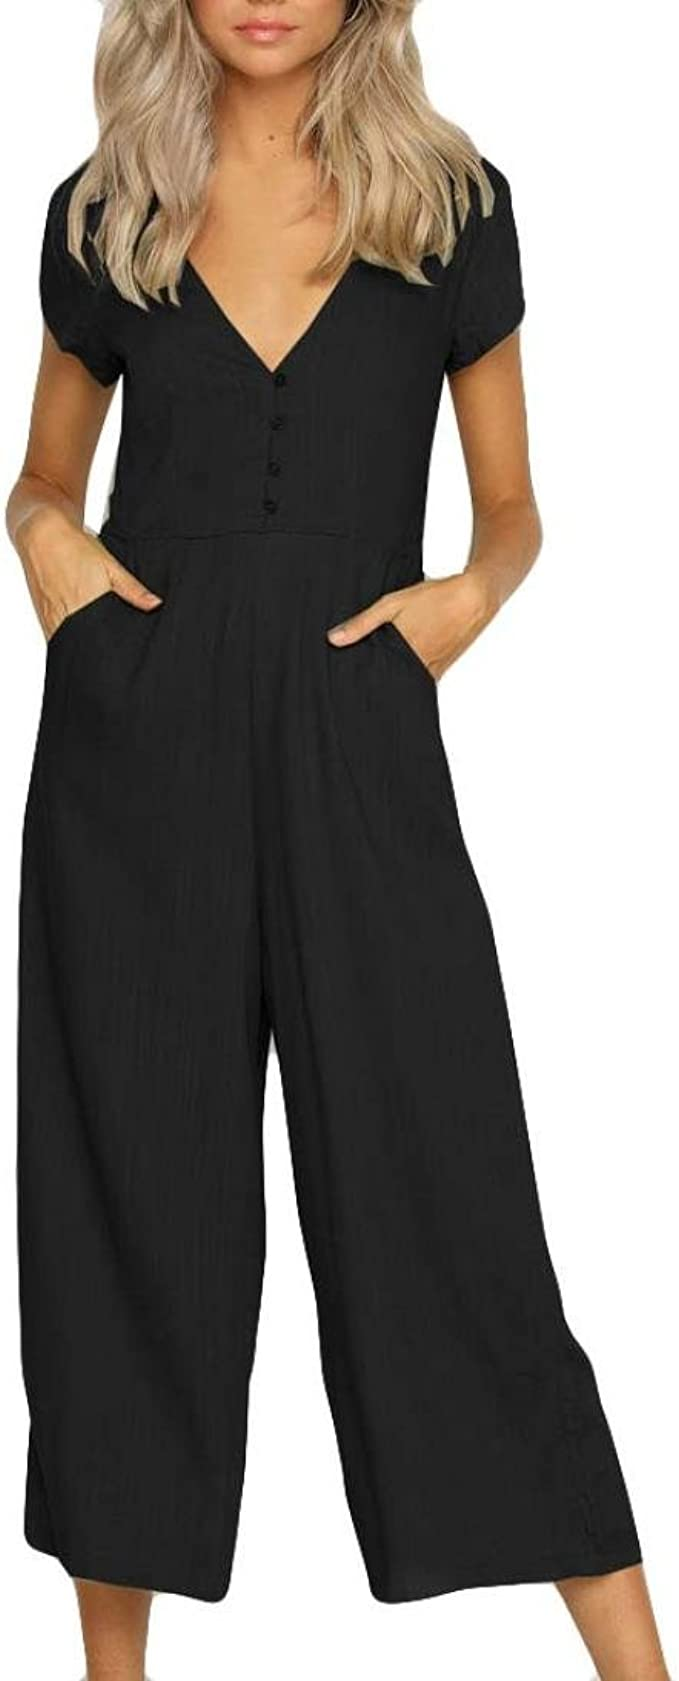 Suvimuga Women Jumpsuits Summer Sleeveless Tie Waist Pocket Long Pants Rompers